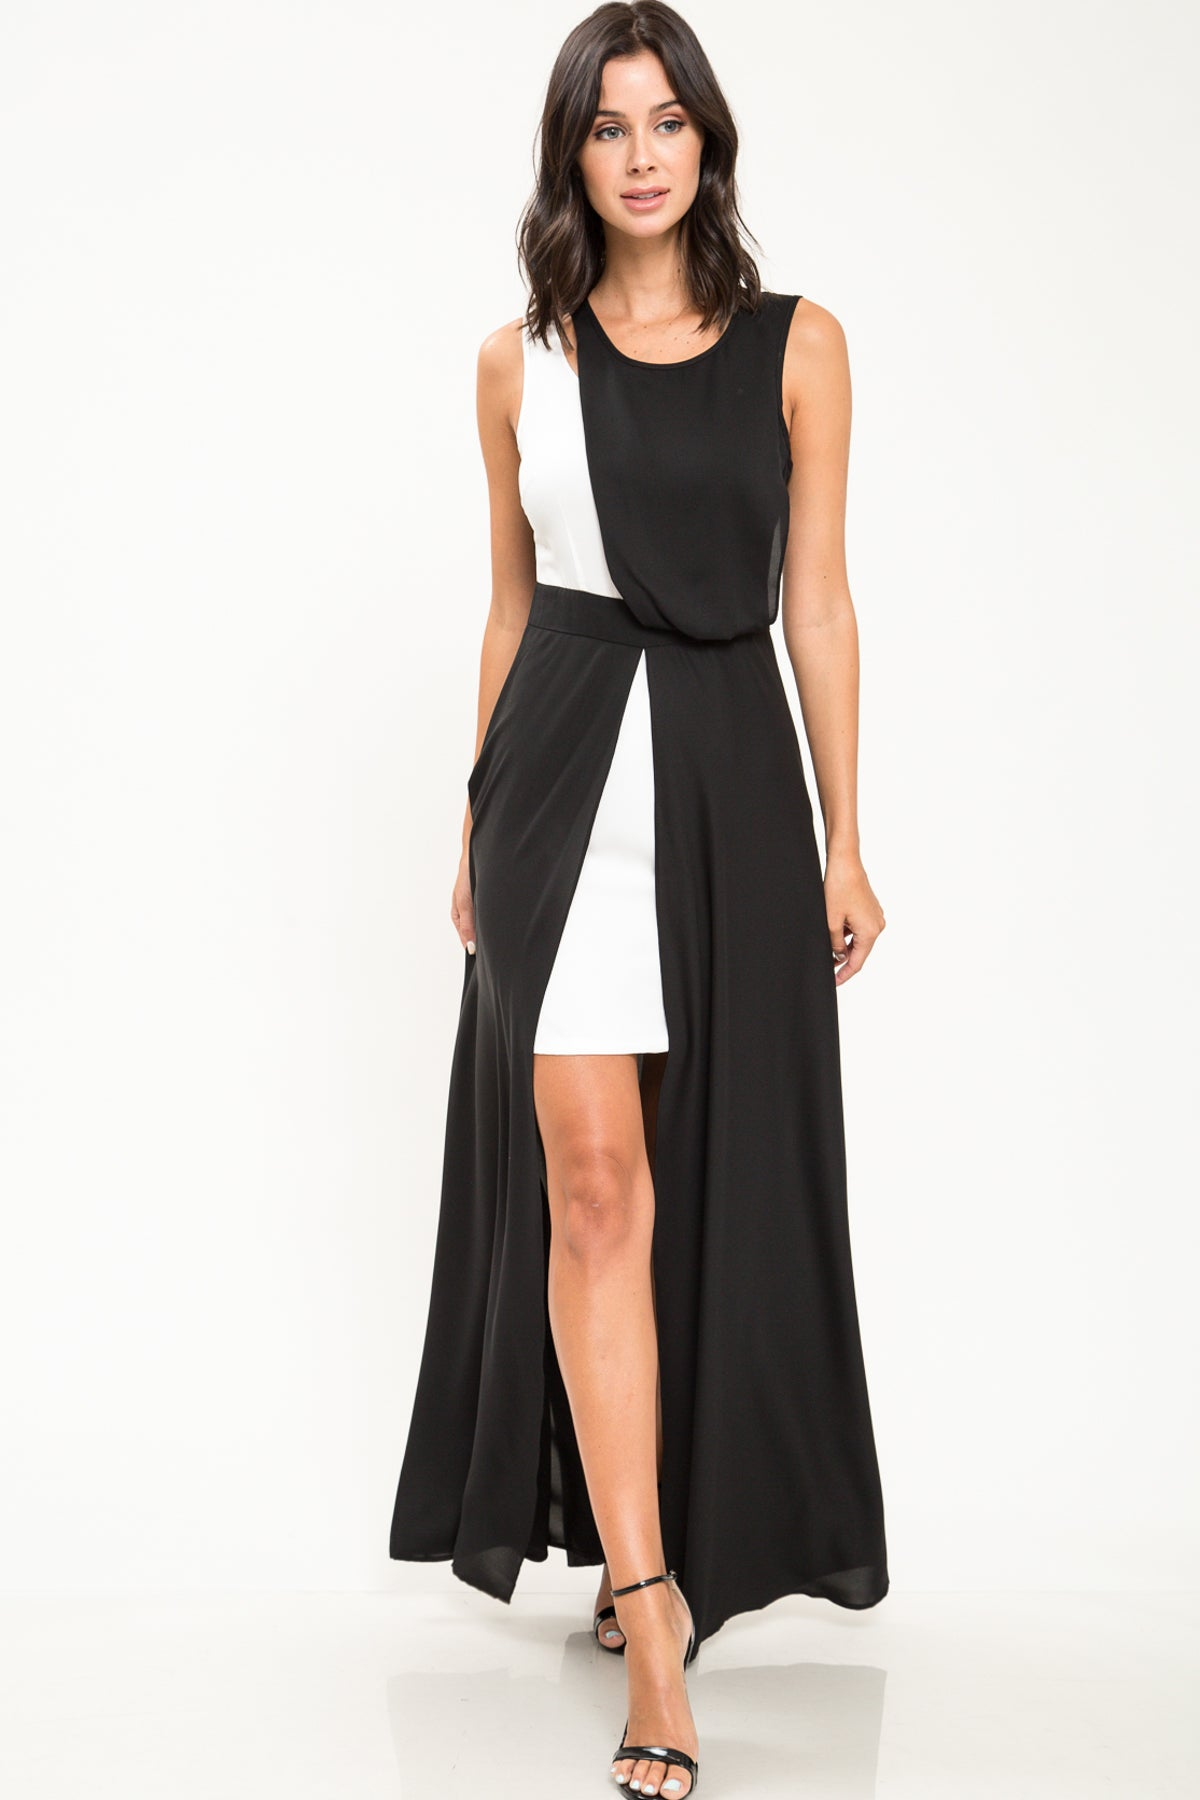 Black And White Contrast Maxi Dress - Geegeebae